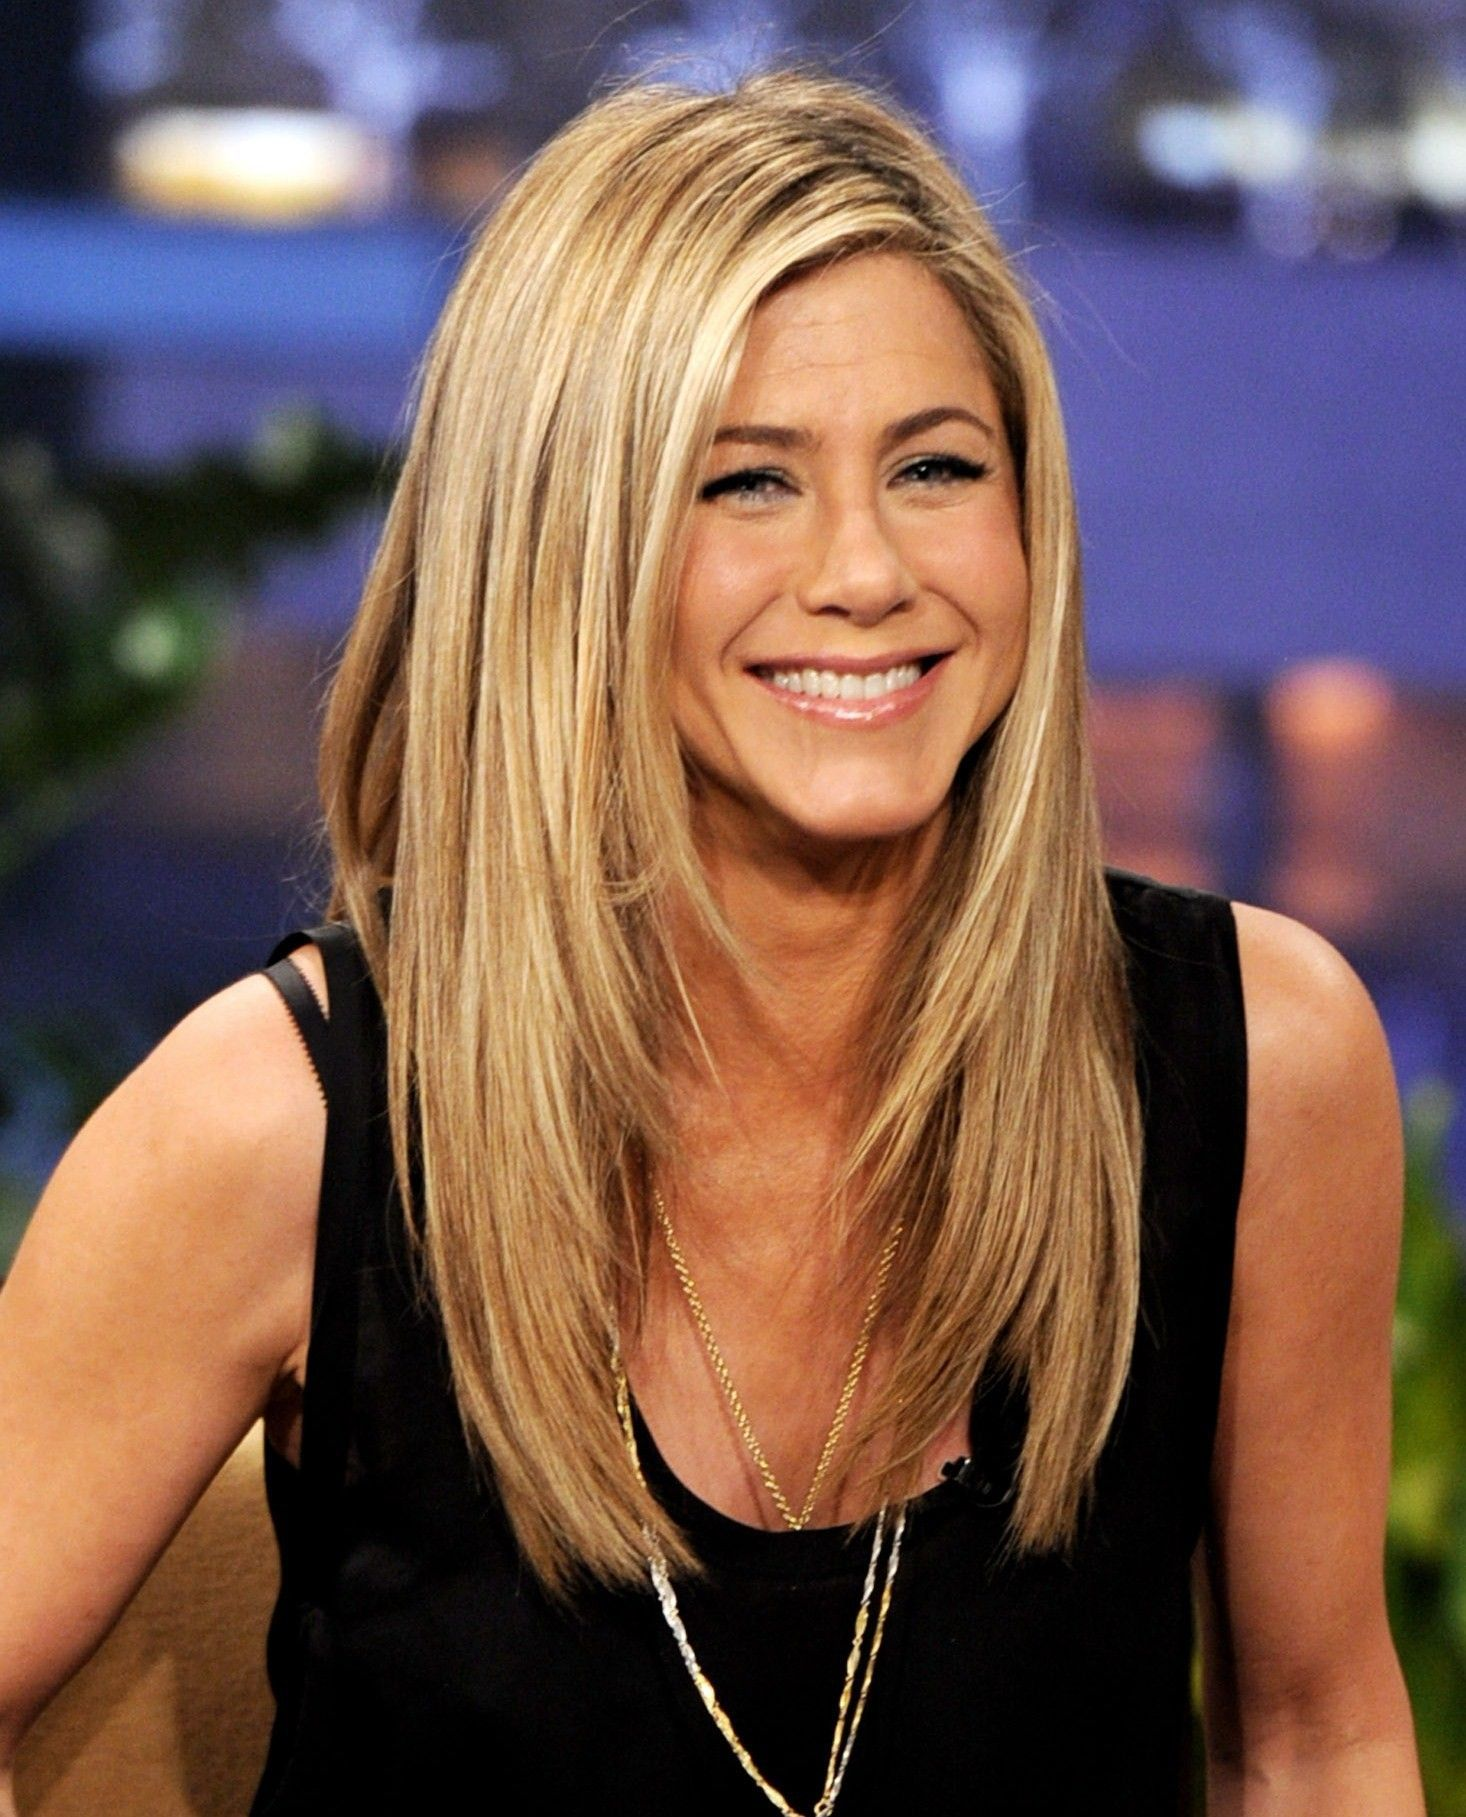 Hairstyles Jennifer Aniston Hairstyles 2018 Long Hair Styles With Layers Aniston Hairstyles Jennifer In 2020 Jennifer Aniston Hair Long Hair Styles Hair Styles